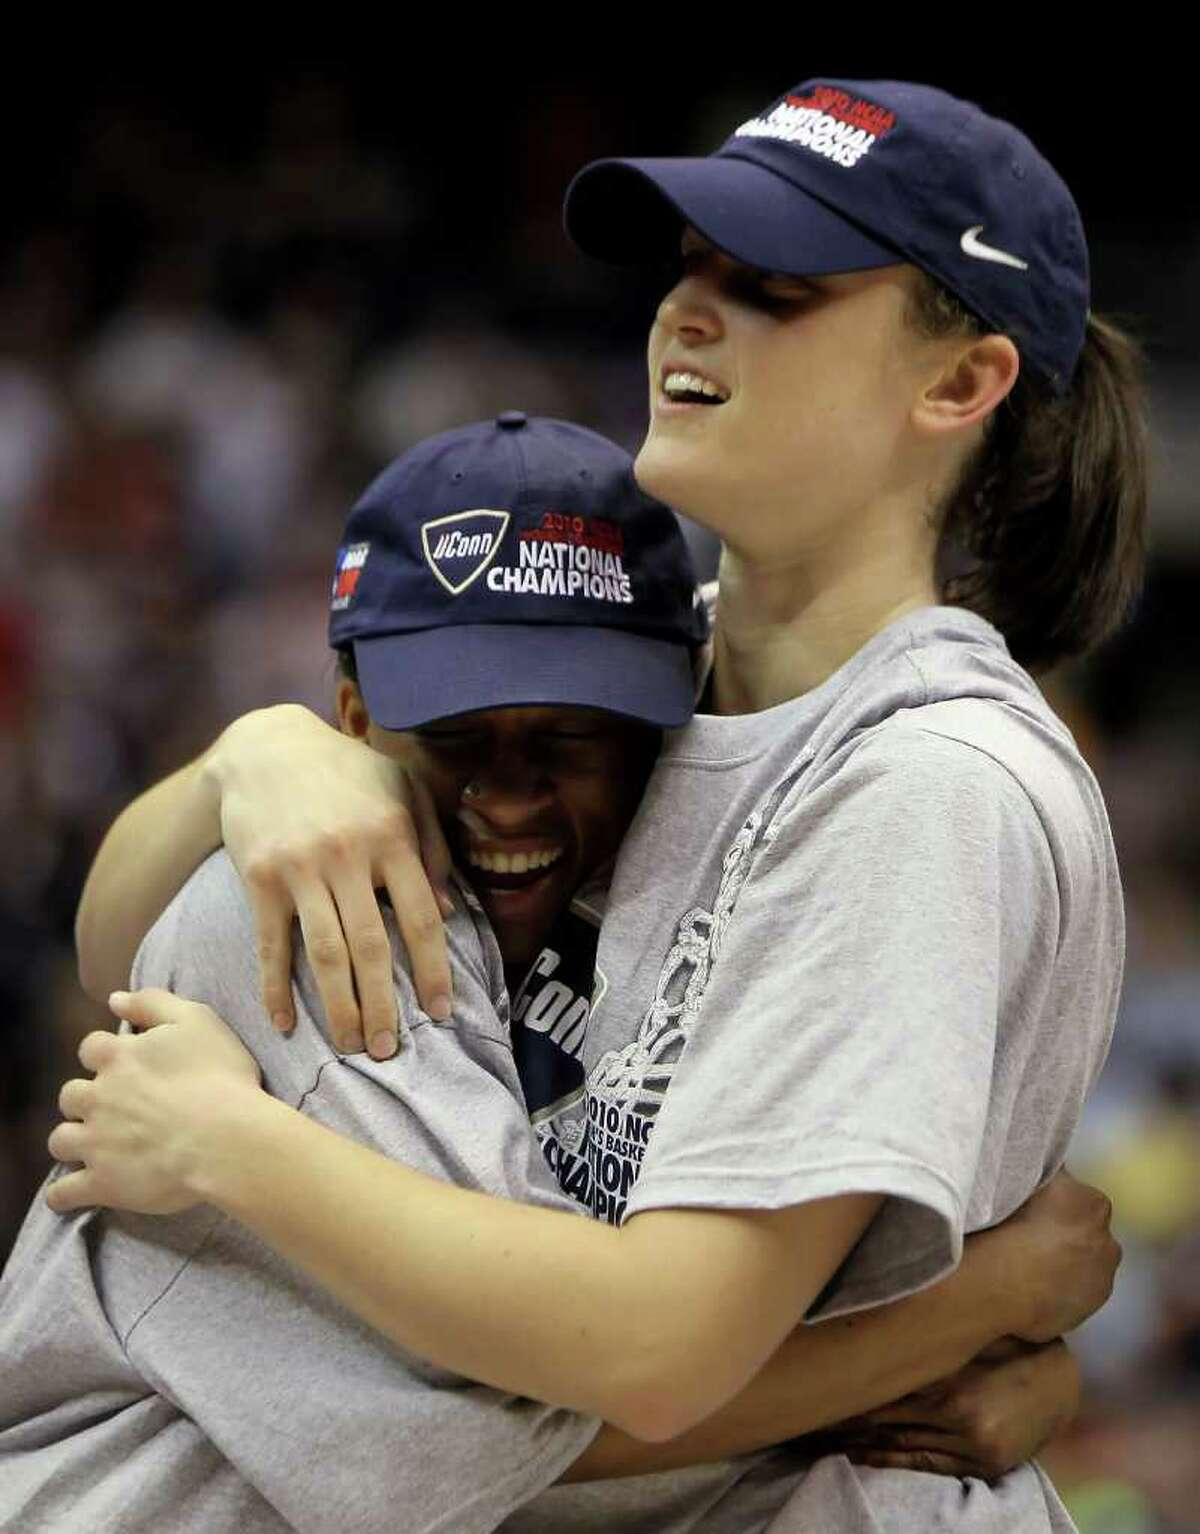 SAN ANTONIO - APRIL 06: Lorin Dixon (L) and Kelly Faris of the Connecticut Huskies hug each other as they celebrate after a 53-47 victory over the Stanford Cardinal during the NCAA Women's Final Four Championship game at the Alamodome on April 6, 2010 in San Antonio, Texas. (Photo by Jeff Gross/Getty Images) *** Local Caption *** Lorin Dixon;Kelly Faris